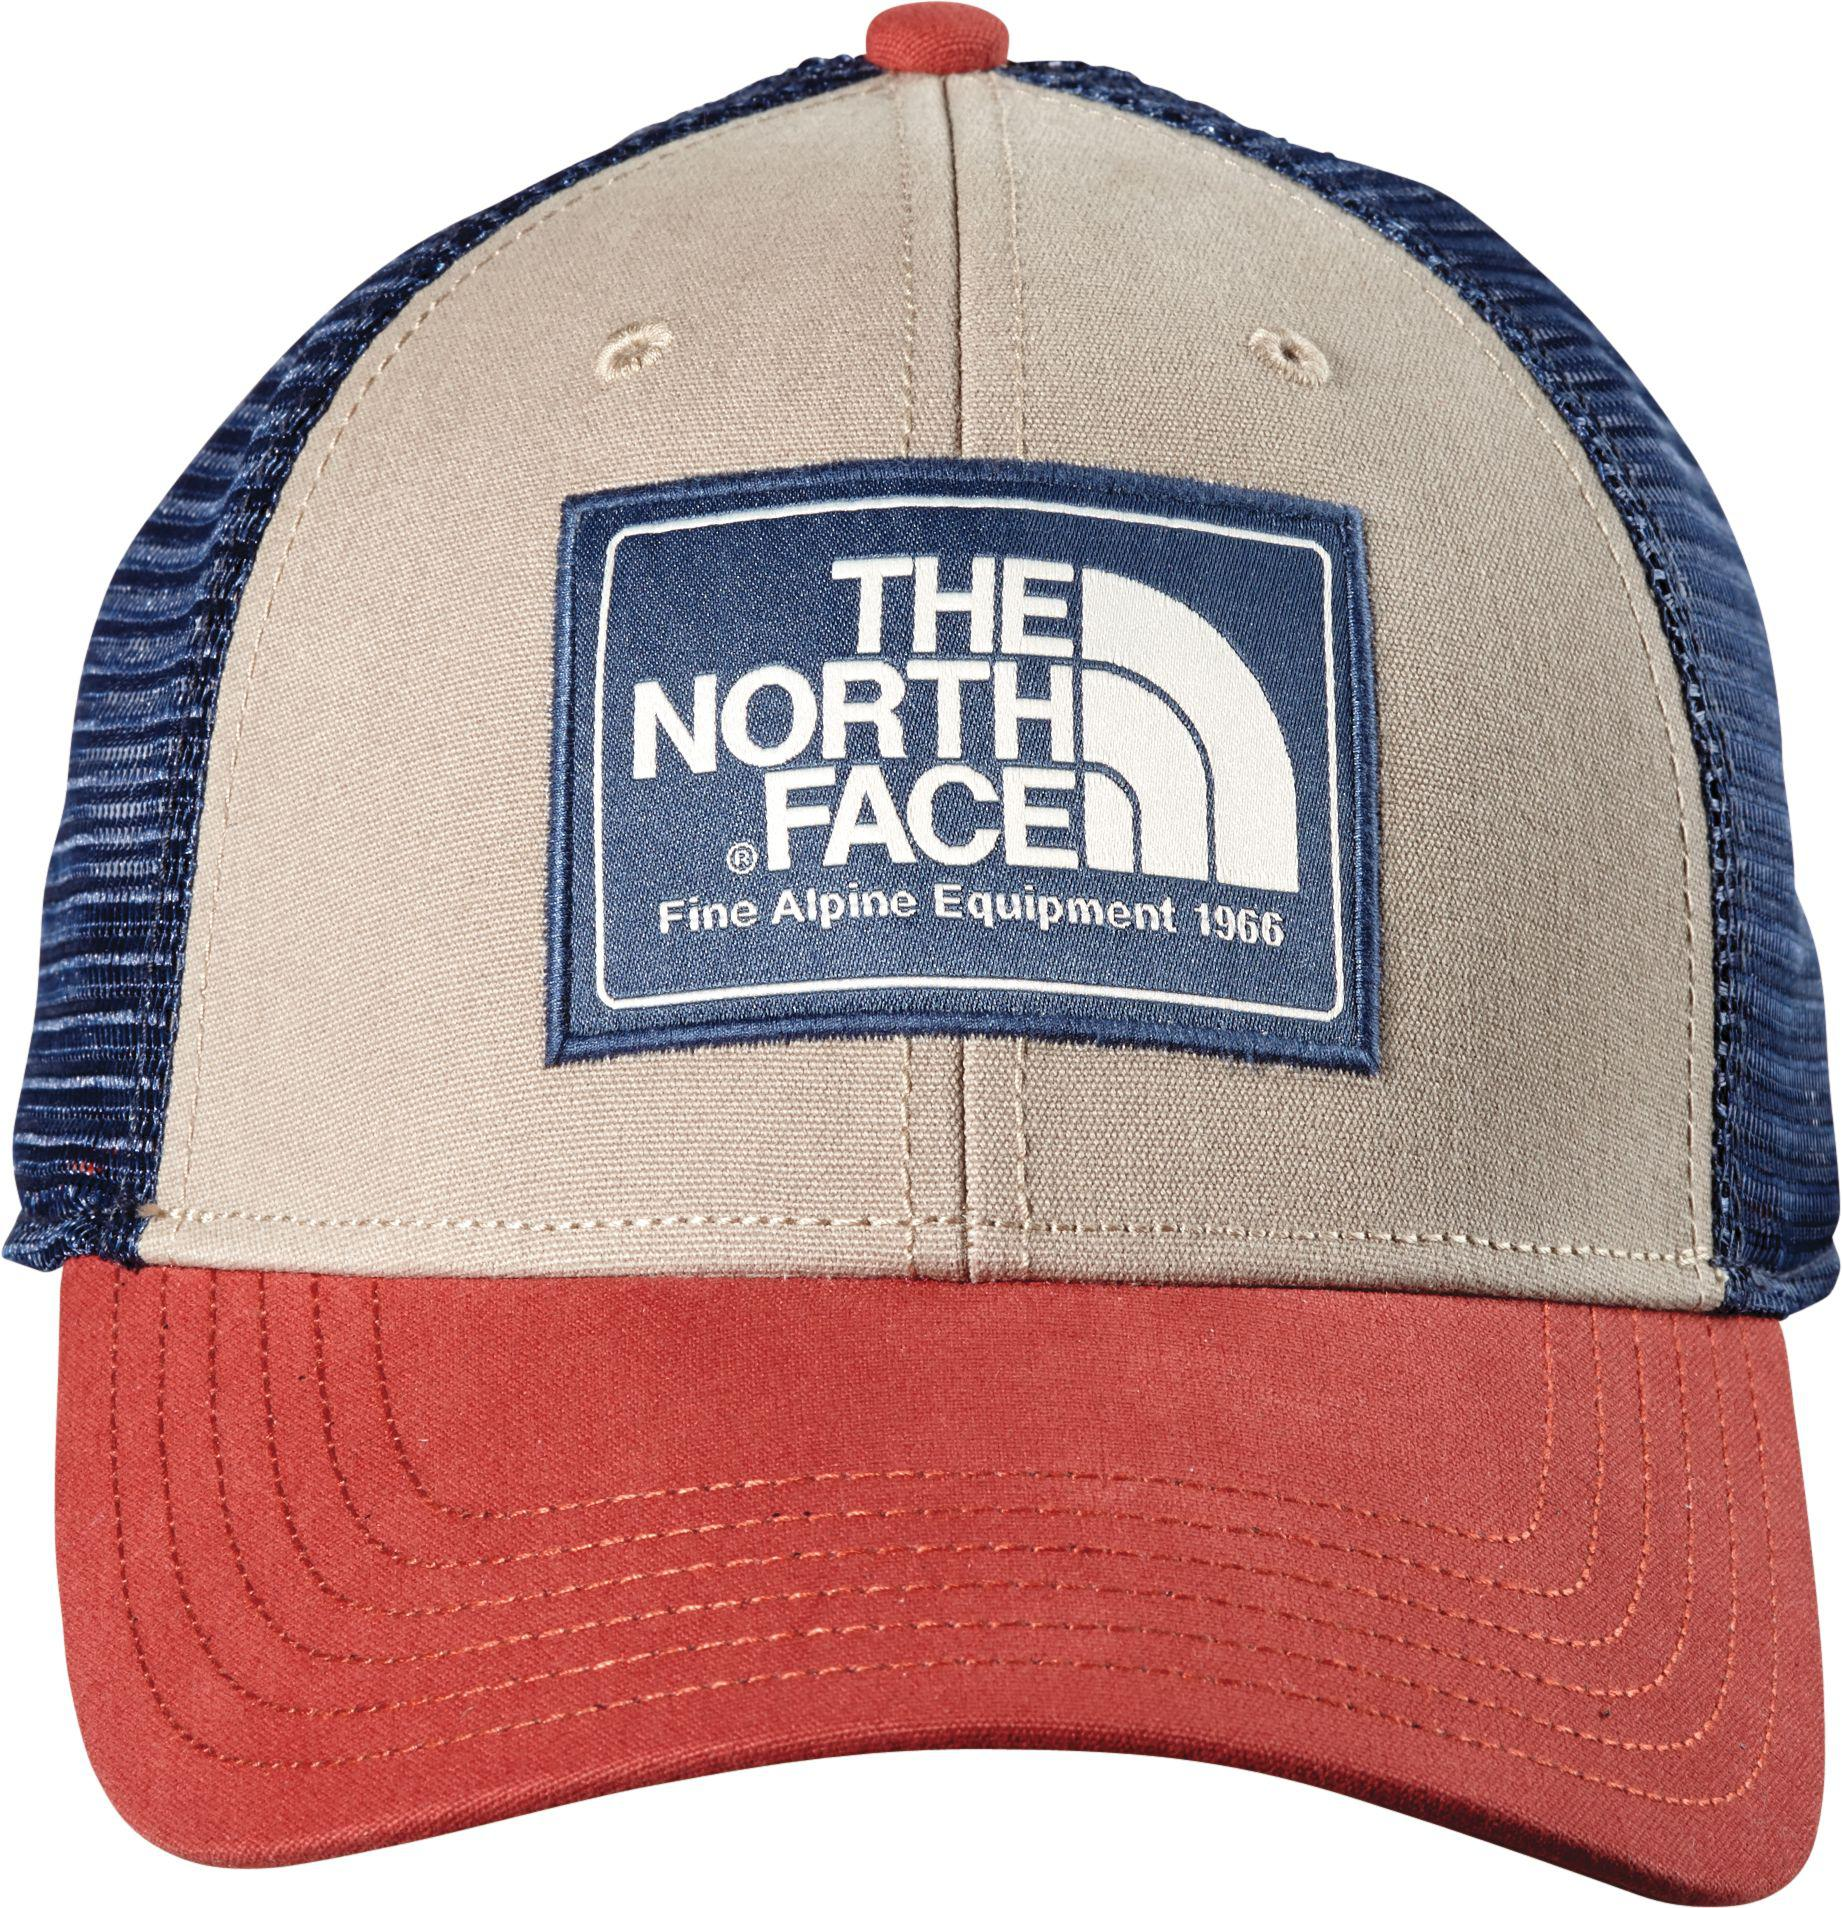 0d23ab754 The North Face Multicolor Mudder Trucker Hat for men